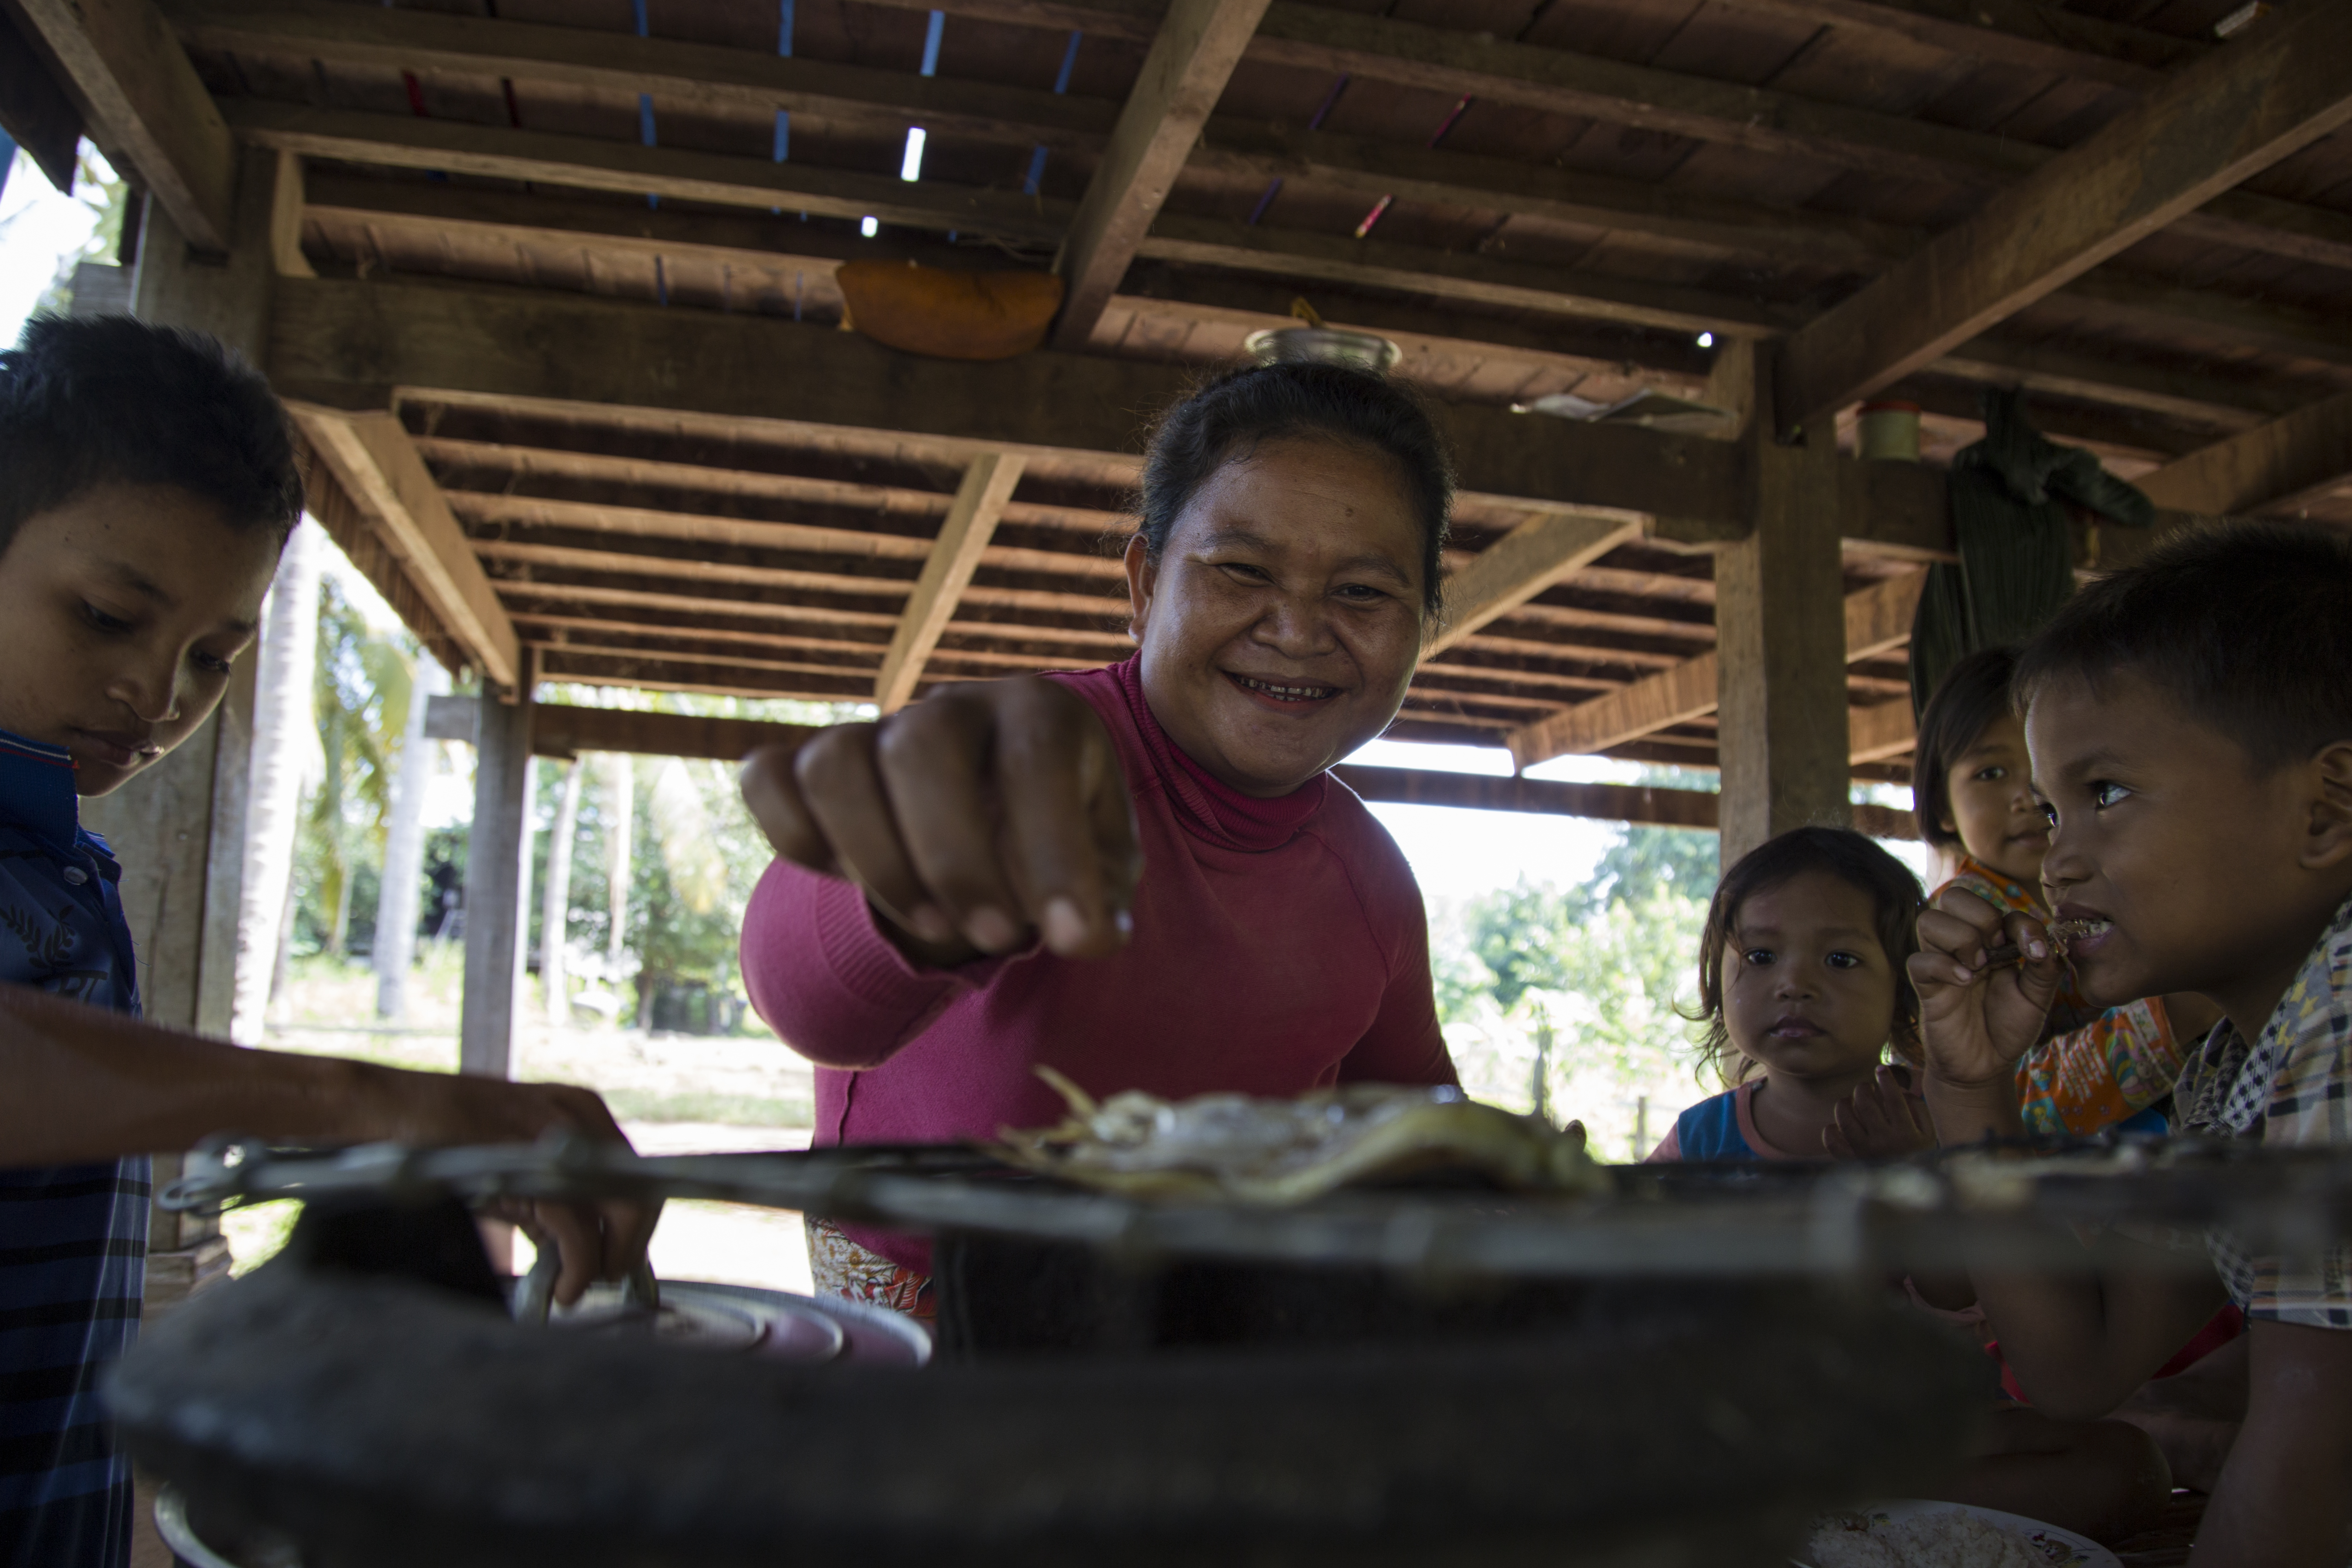 Soth's wife Phun Lai prepare a meal for their children, under their raised home in Koh Khnher village.  Photo by Savann Oeurm/Oxfam